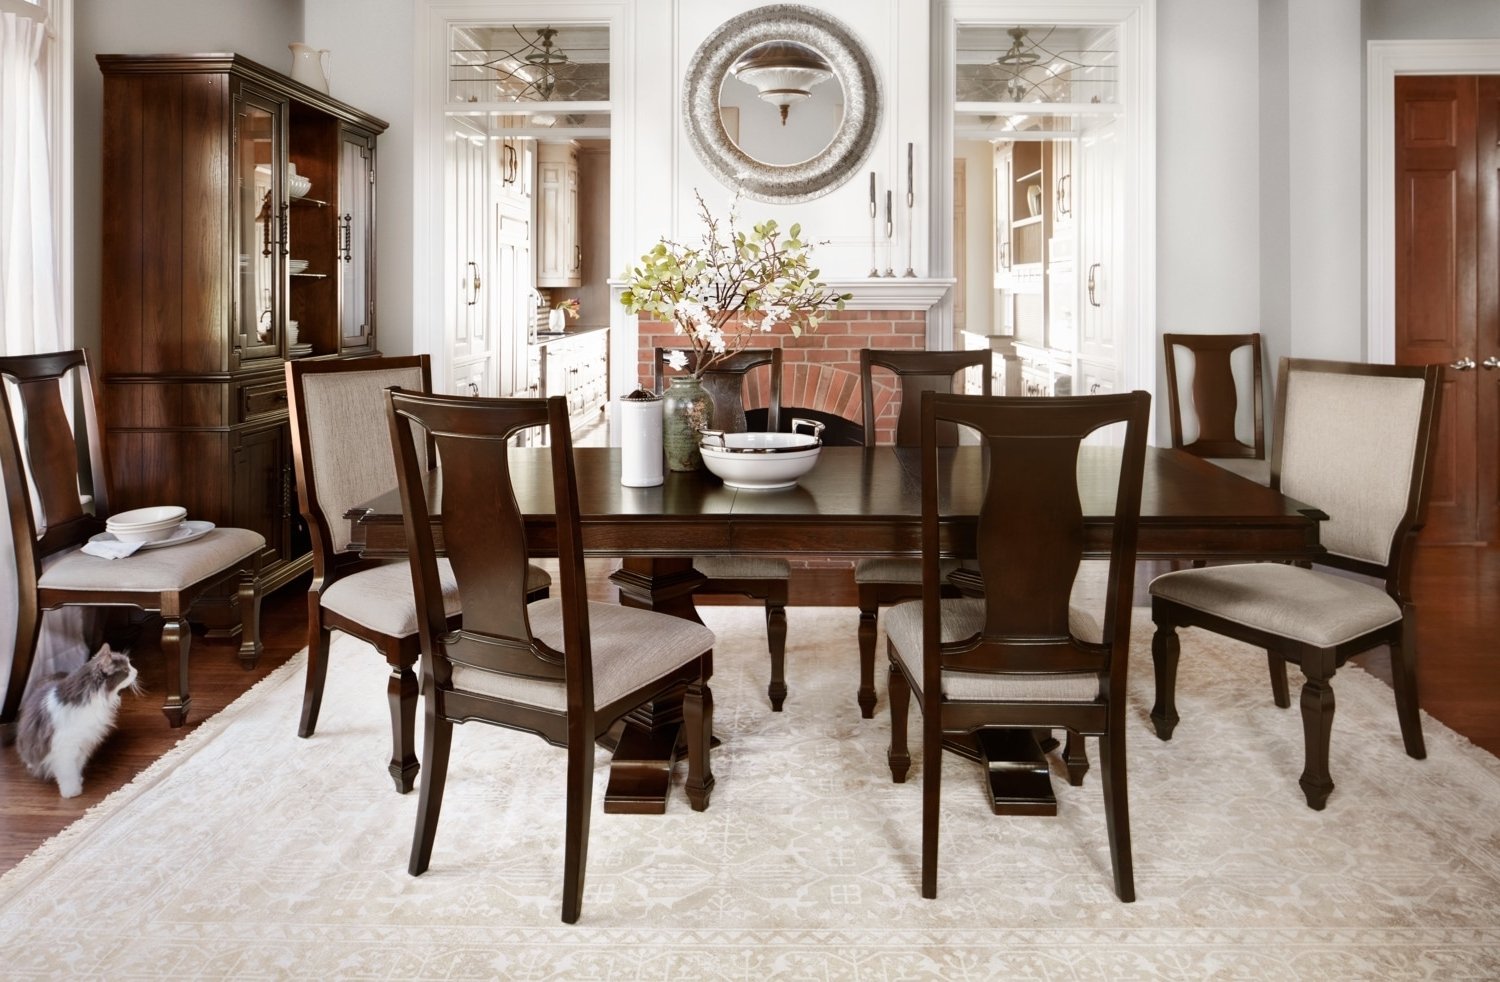 Trendy Vienna Dining Tables Regarding Vienna Dining Table, 6 Side Chairs And 2 Upholstered Side Chairs (View 18 of 25)